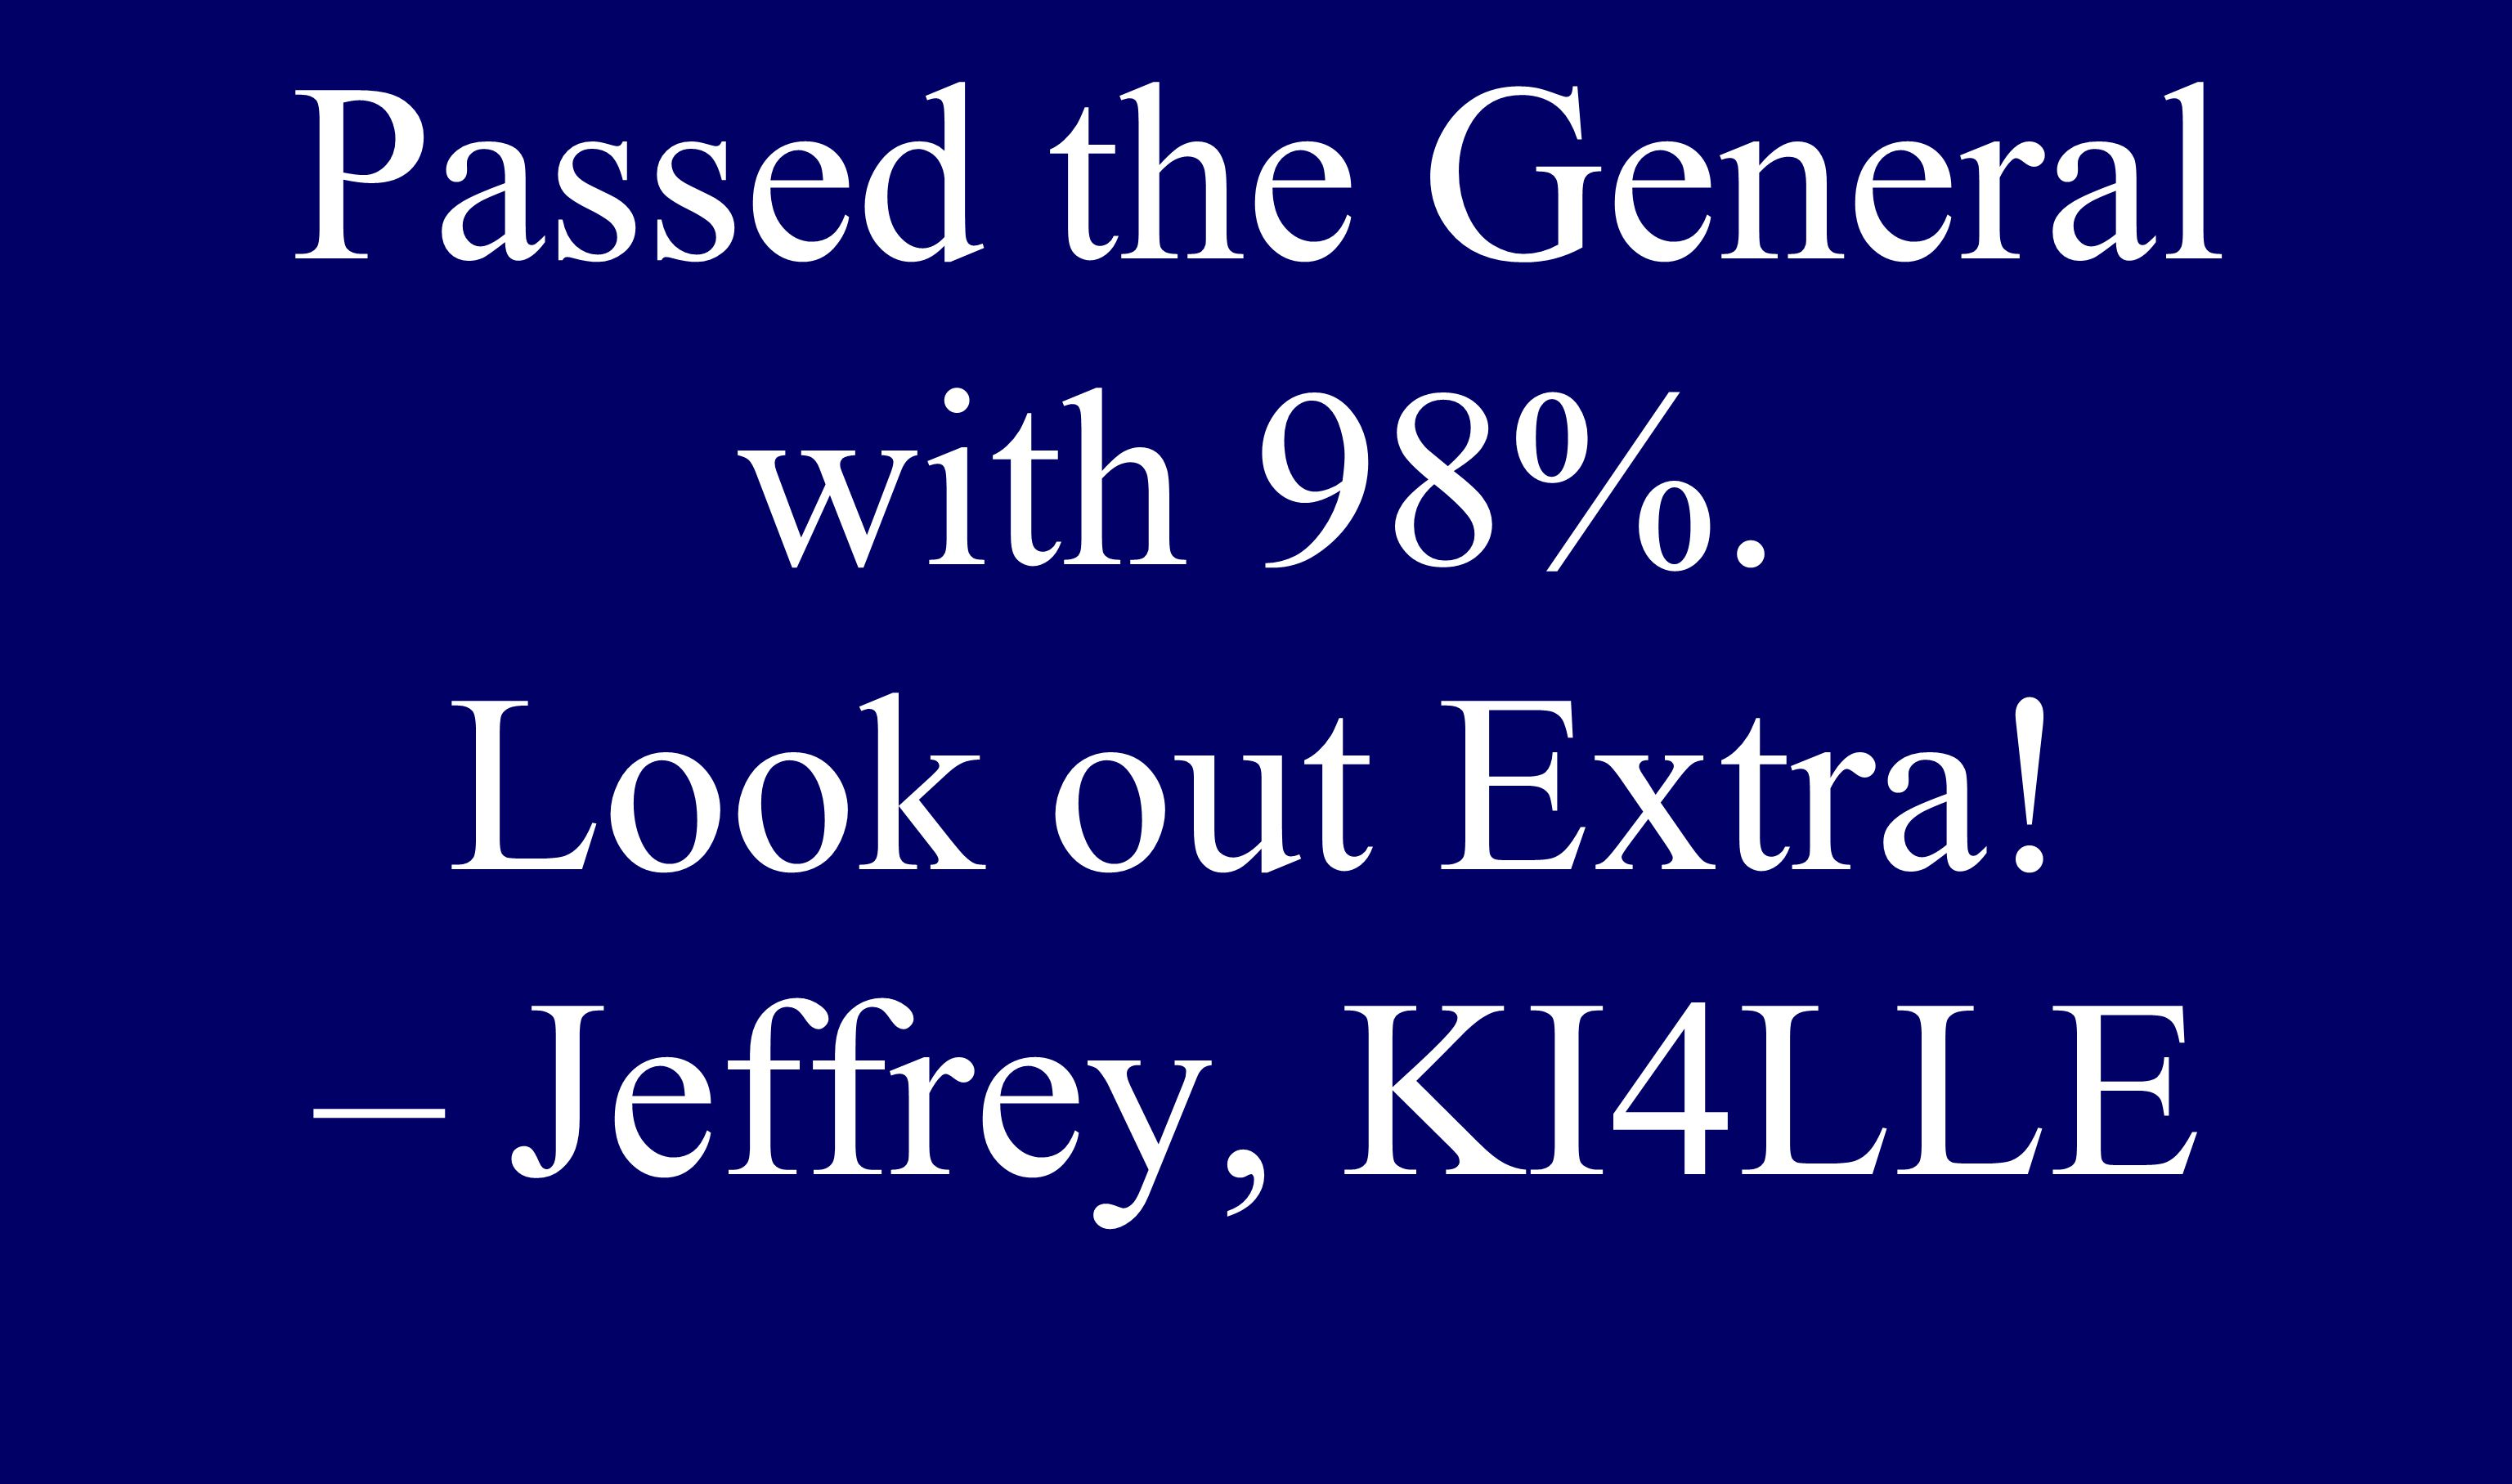 Passed the General with 98%. Look out Extra! – Jeffrey, KI4LLE